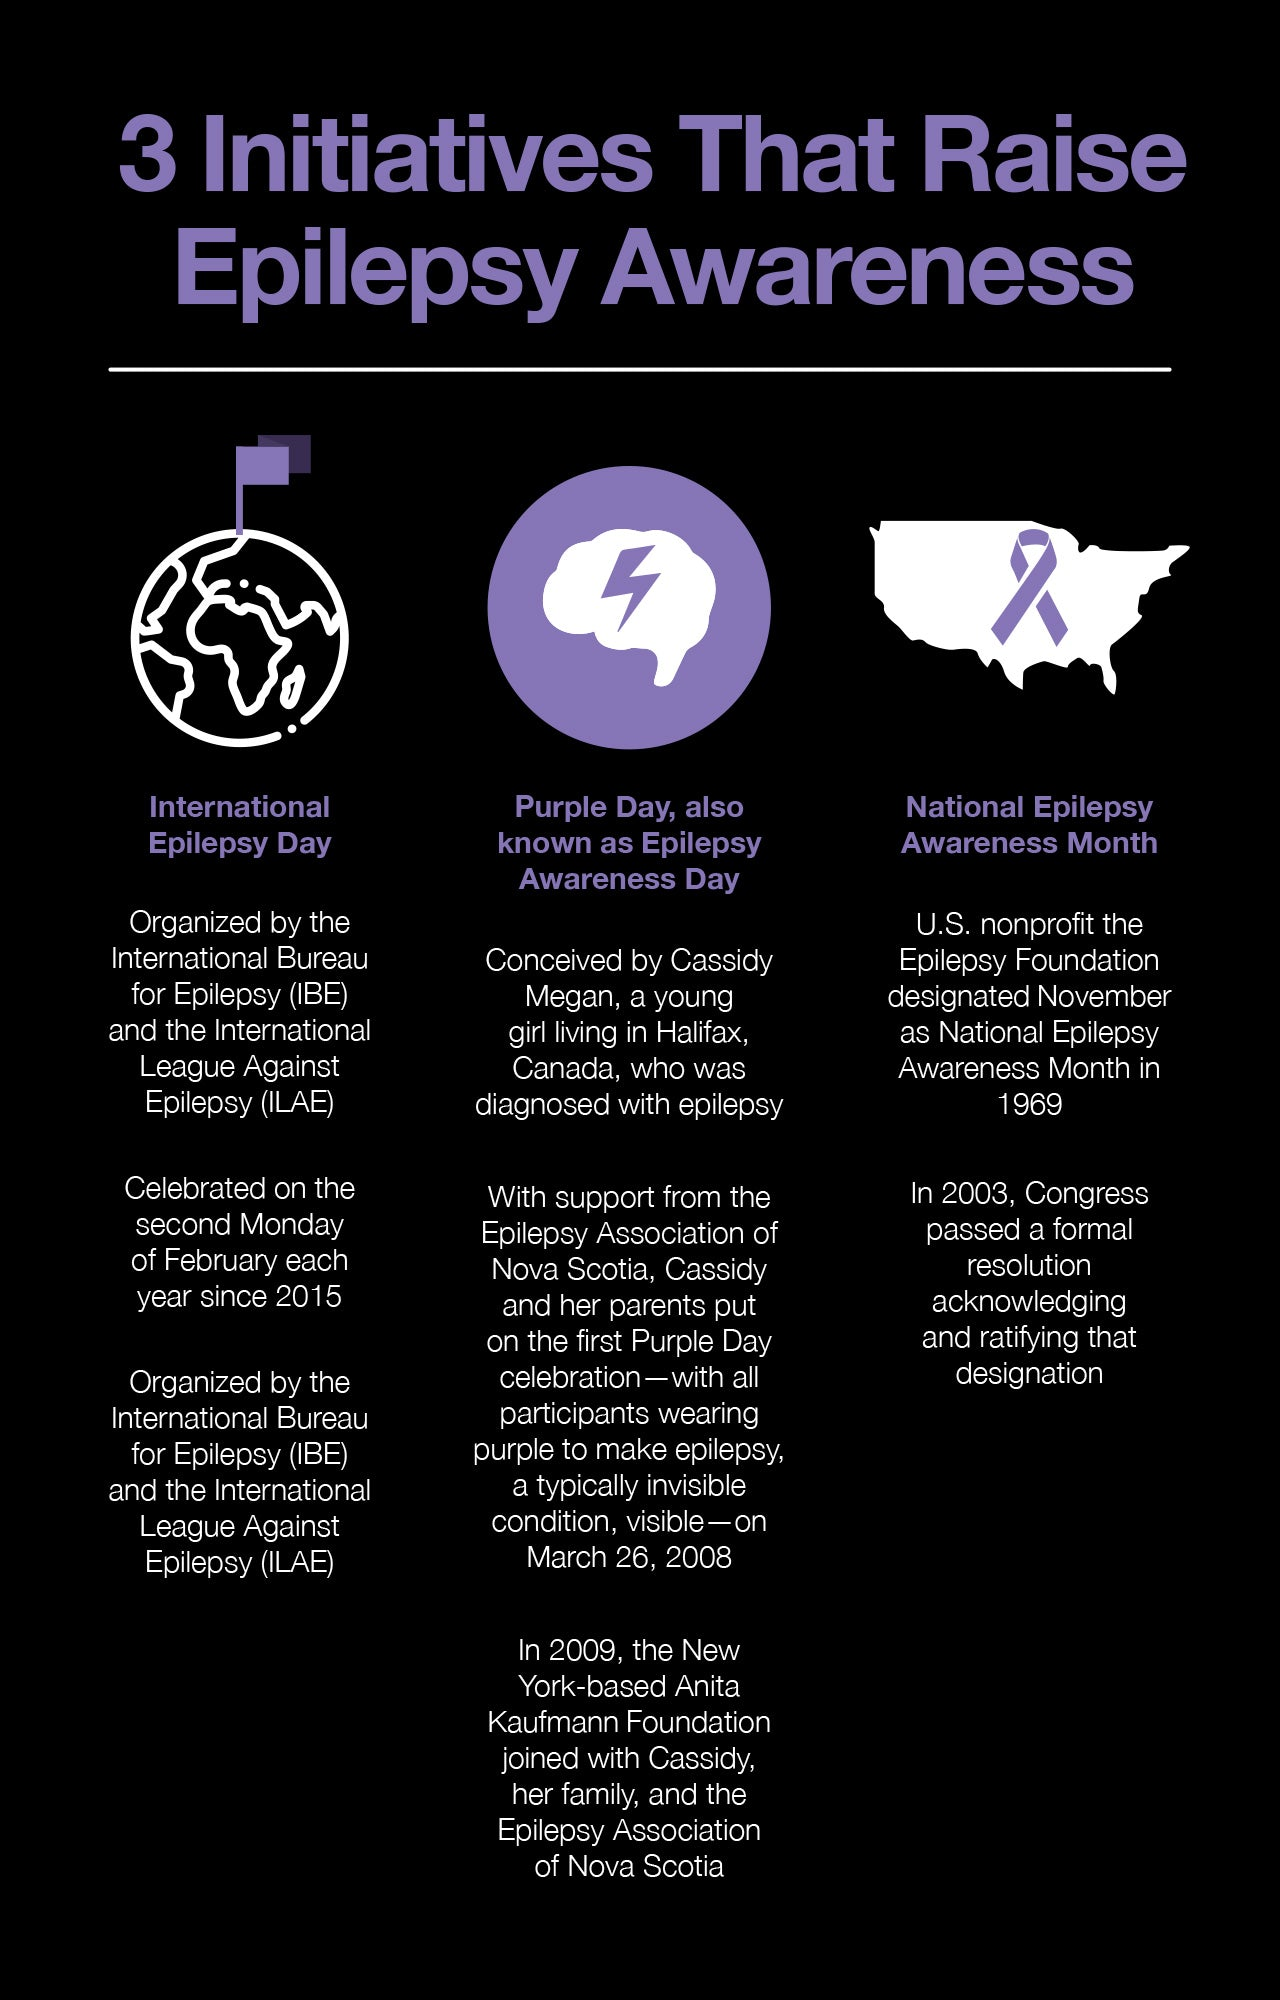 3 Initiatives That Raise Epilepsy Awareness